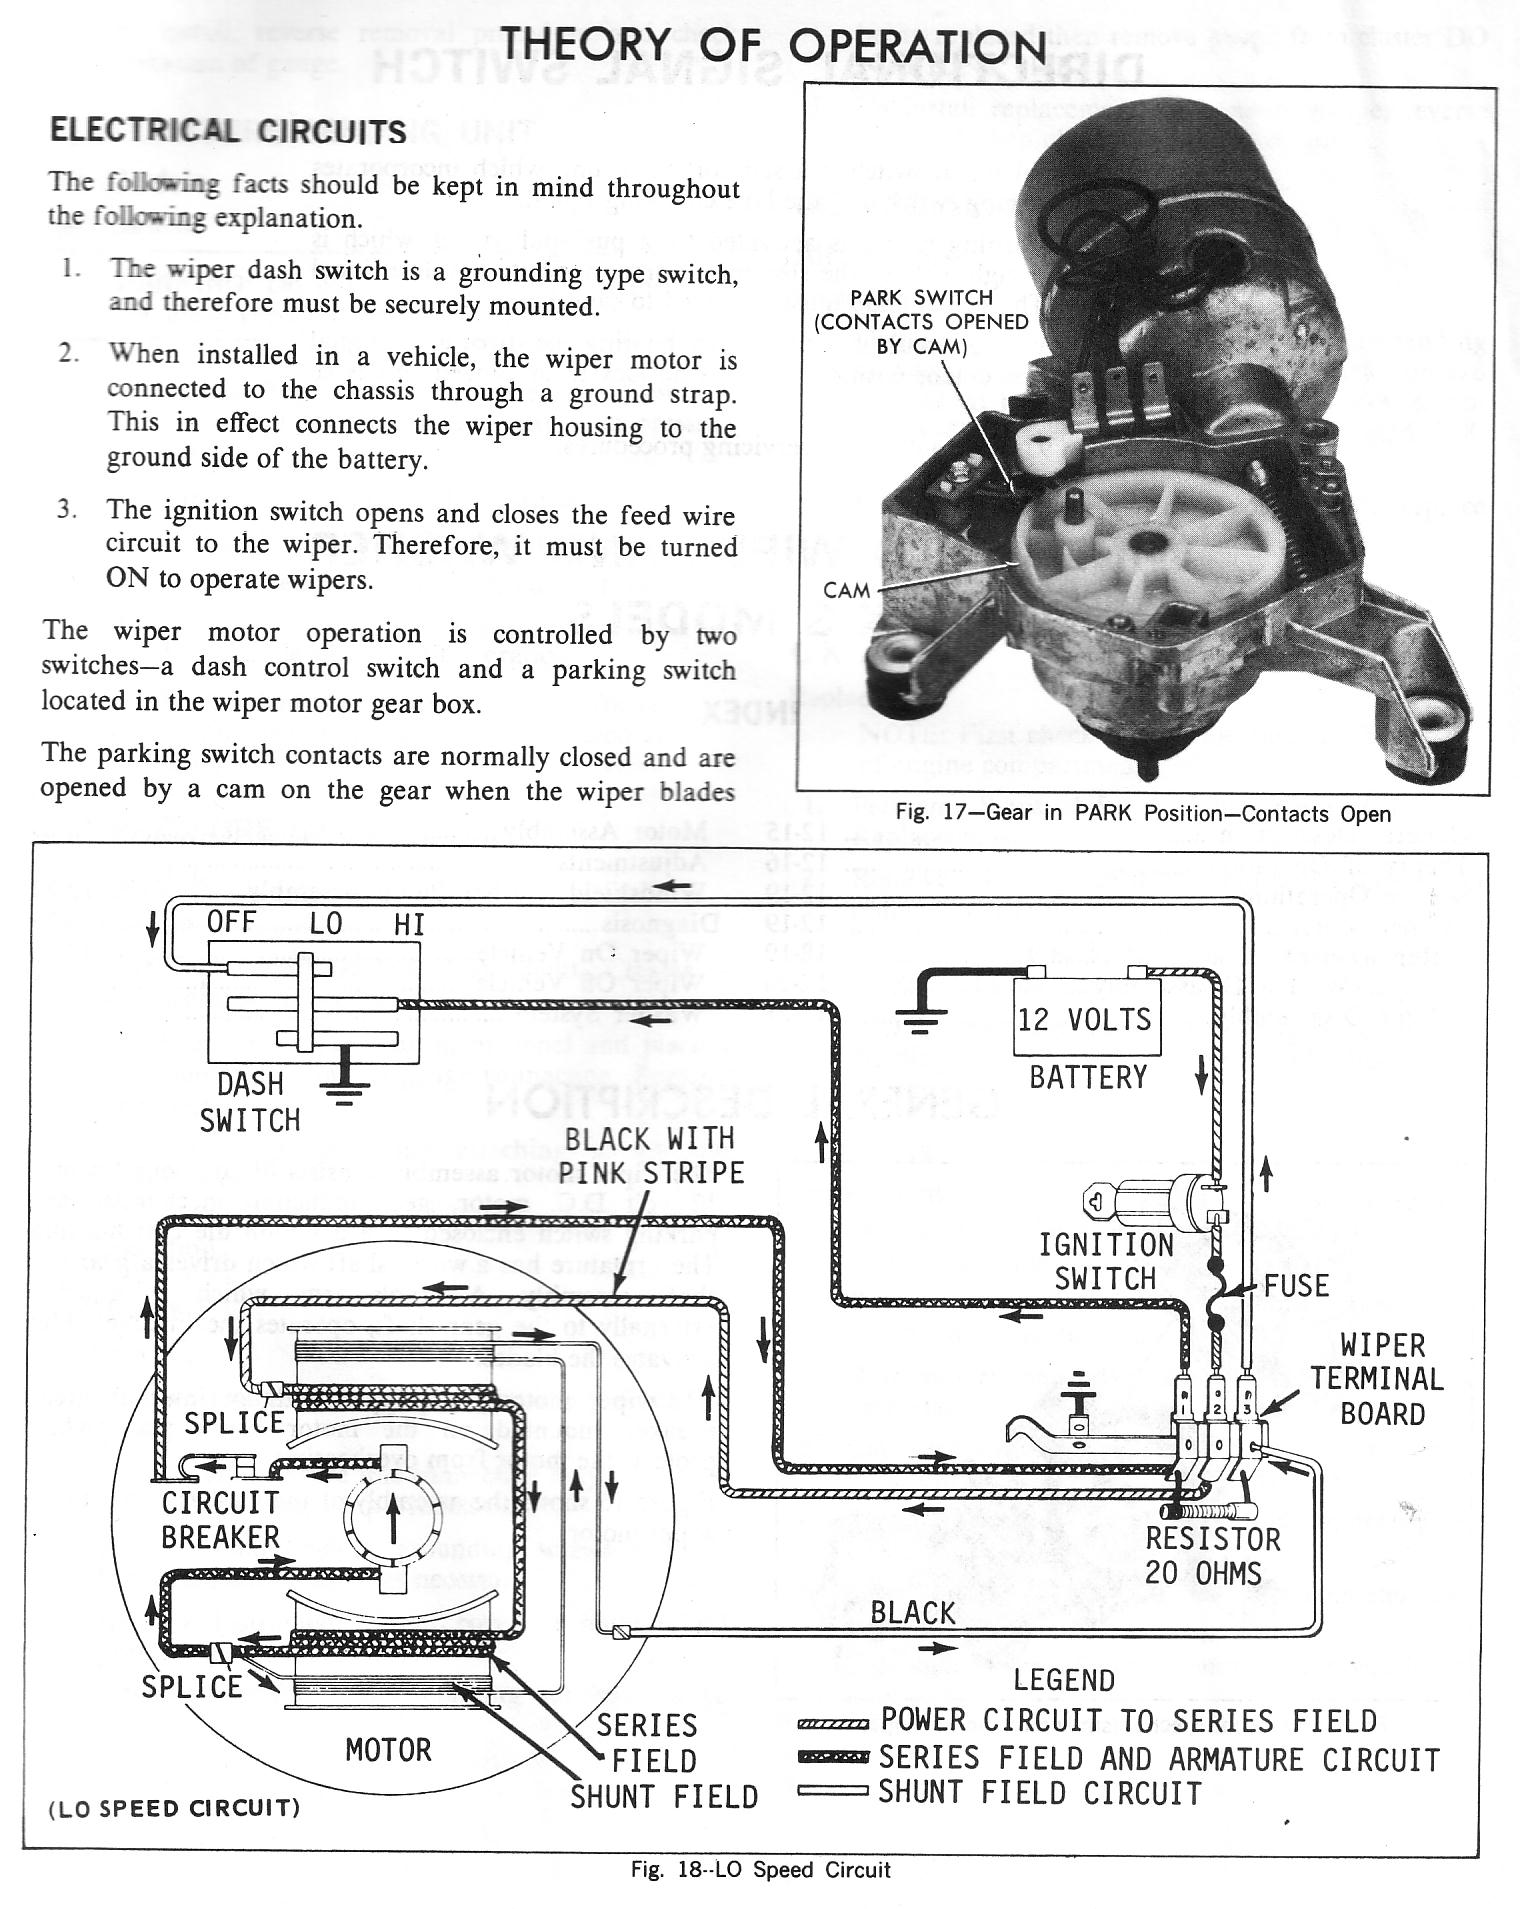 1978 Chevy Truck Wiper Switch Wiring Diagram, 1978, Get